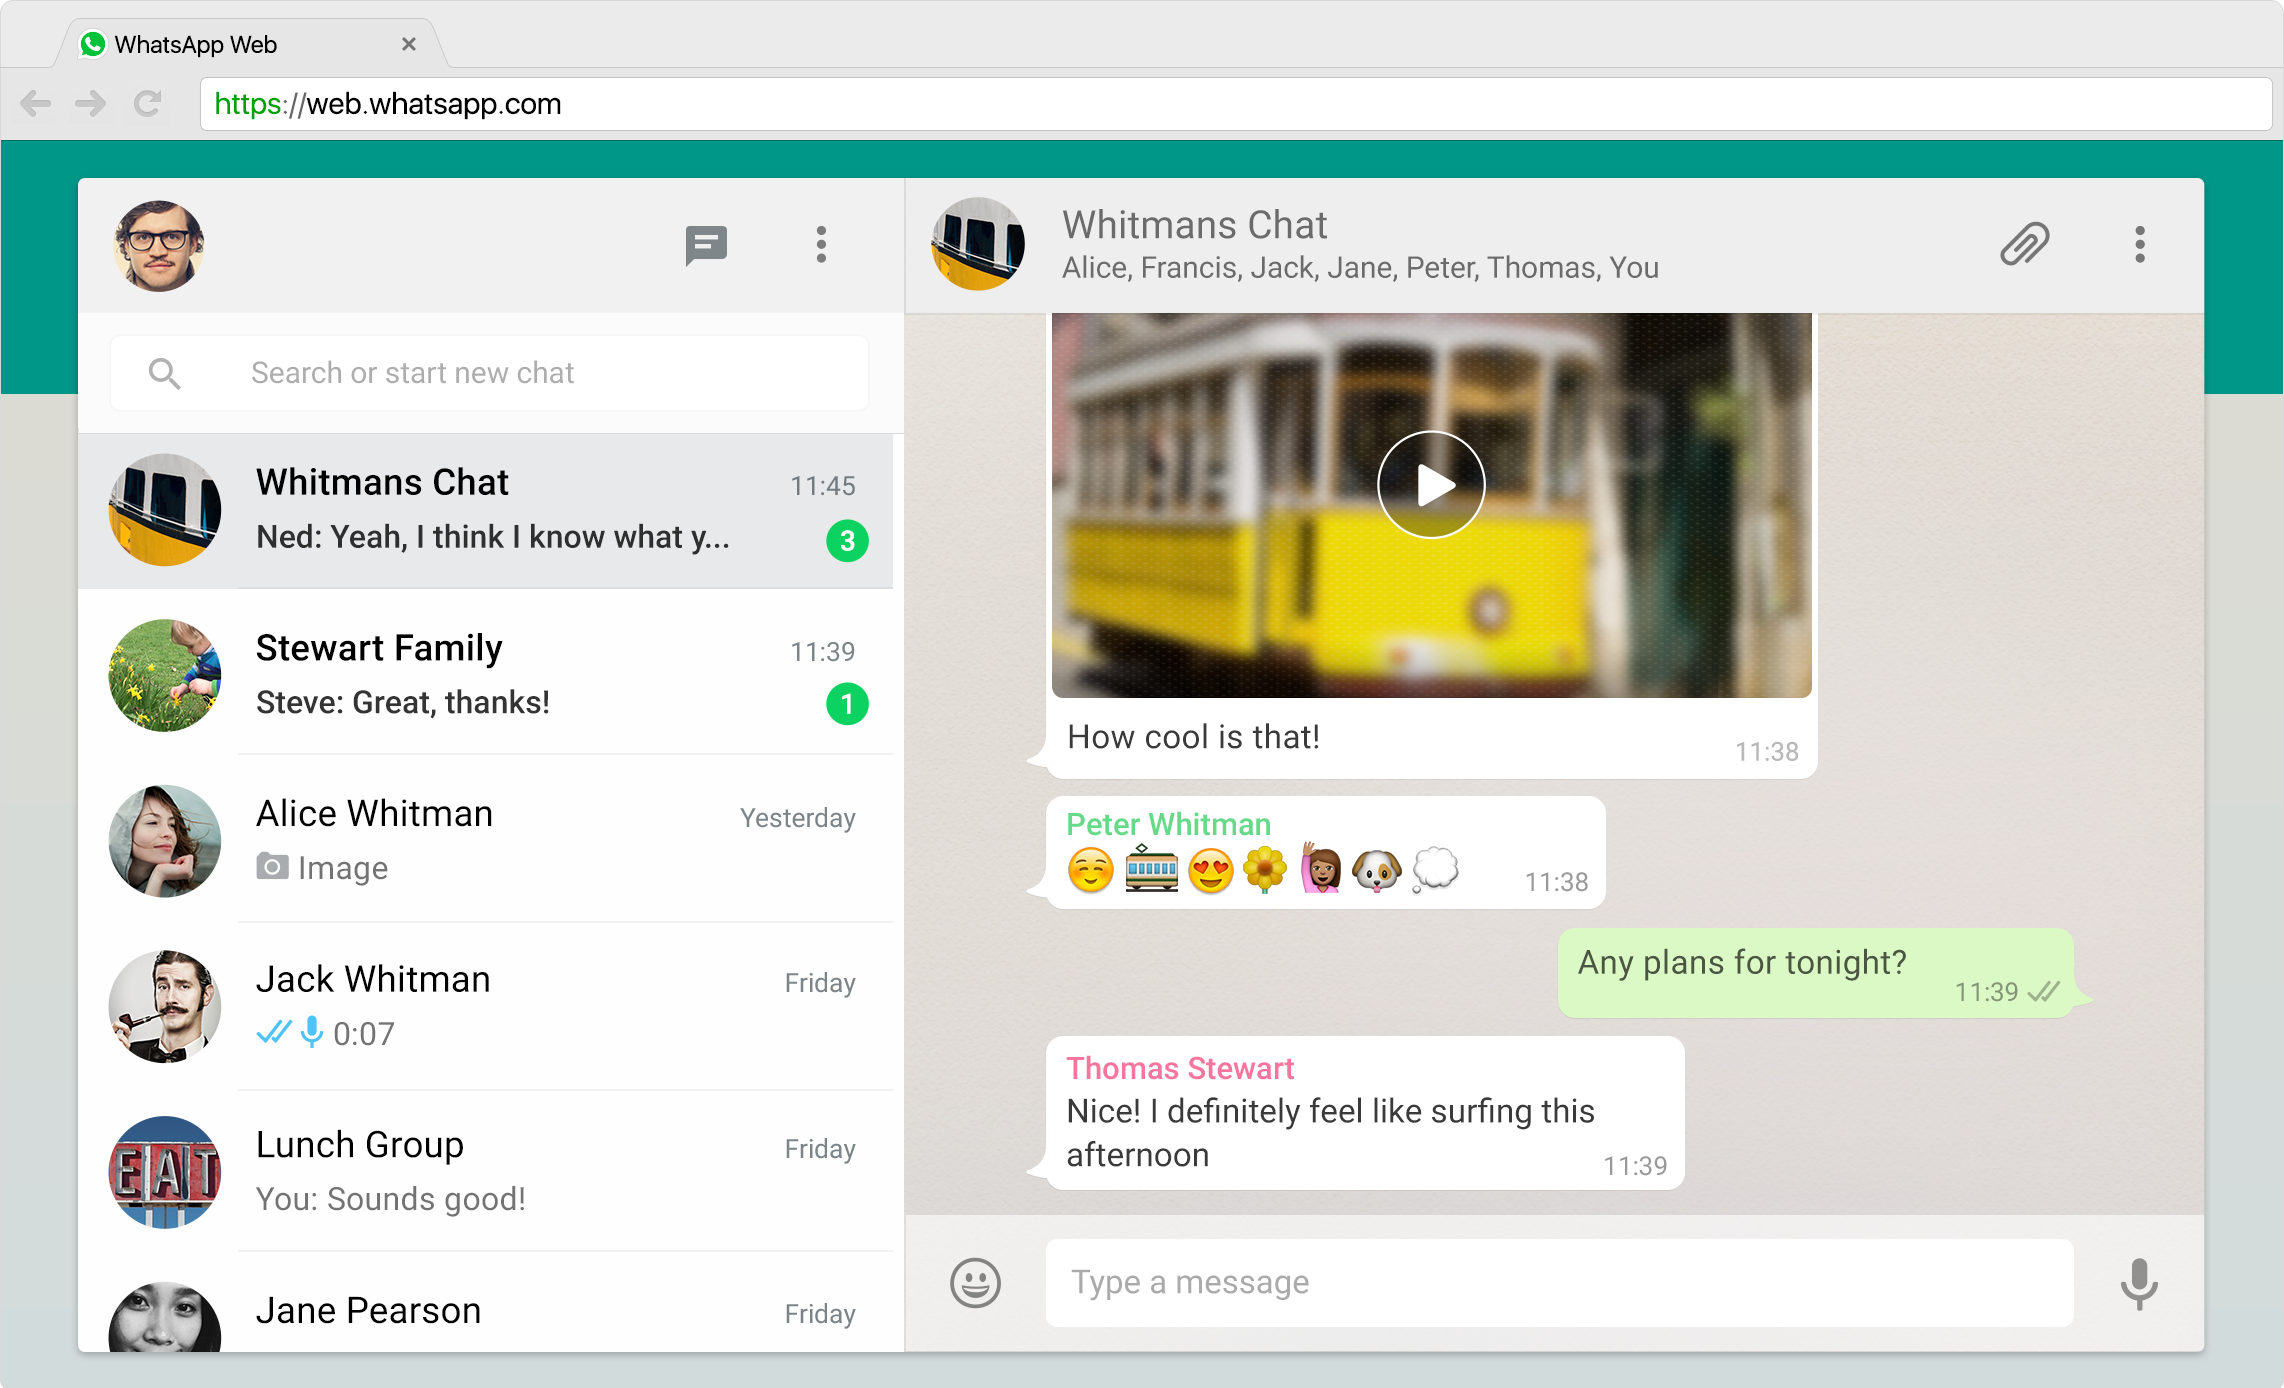 Facebooks influence evident as WhatsApp ends consumer fees to profit from businesses